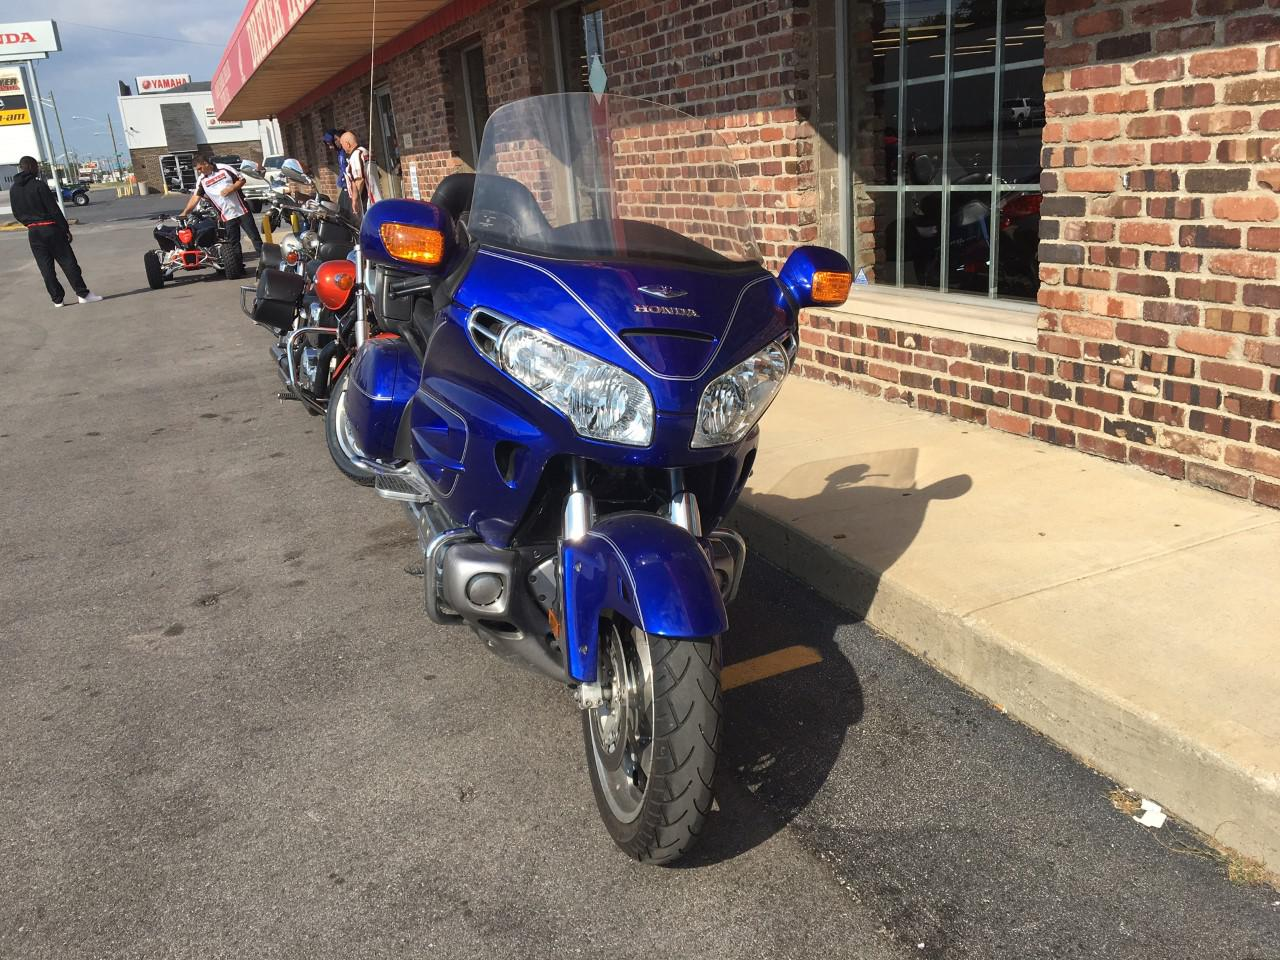 2005 honda gold wing 1800 for sale in indianapolis, in | dreyer